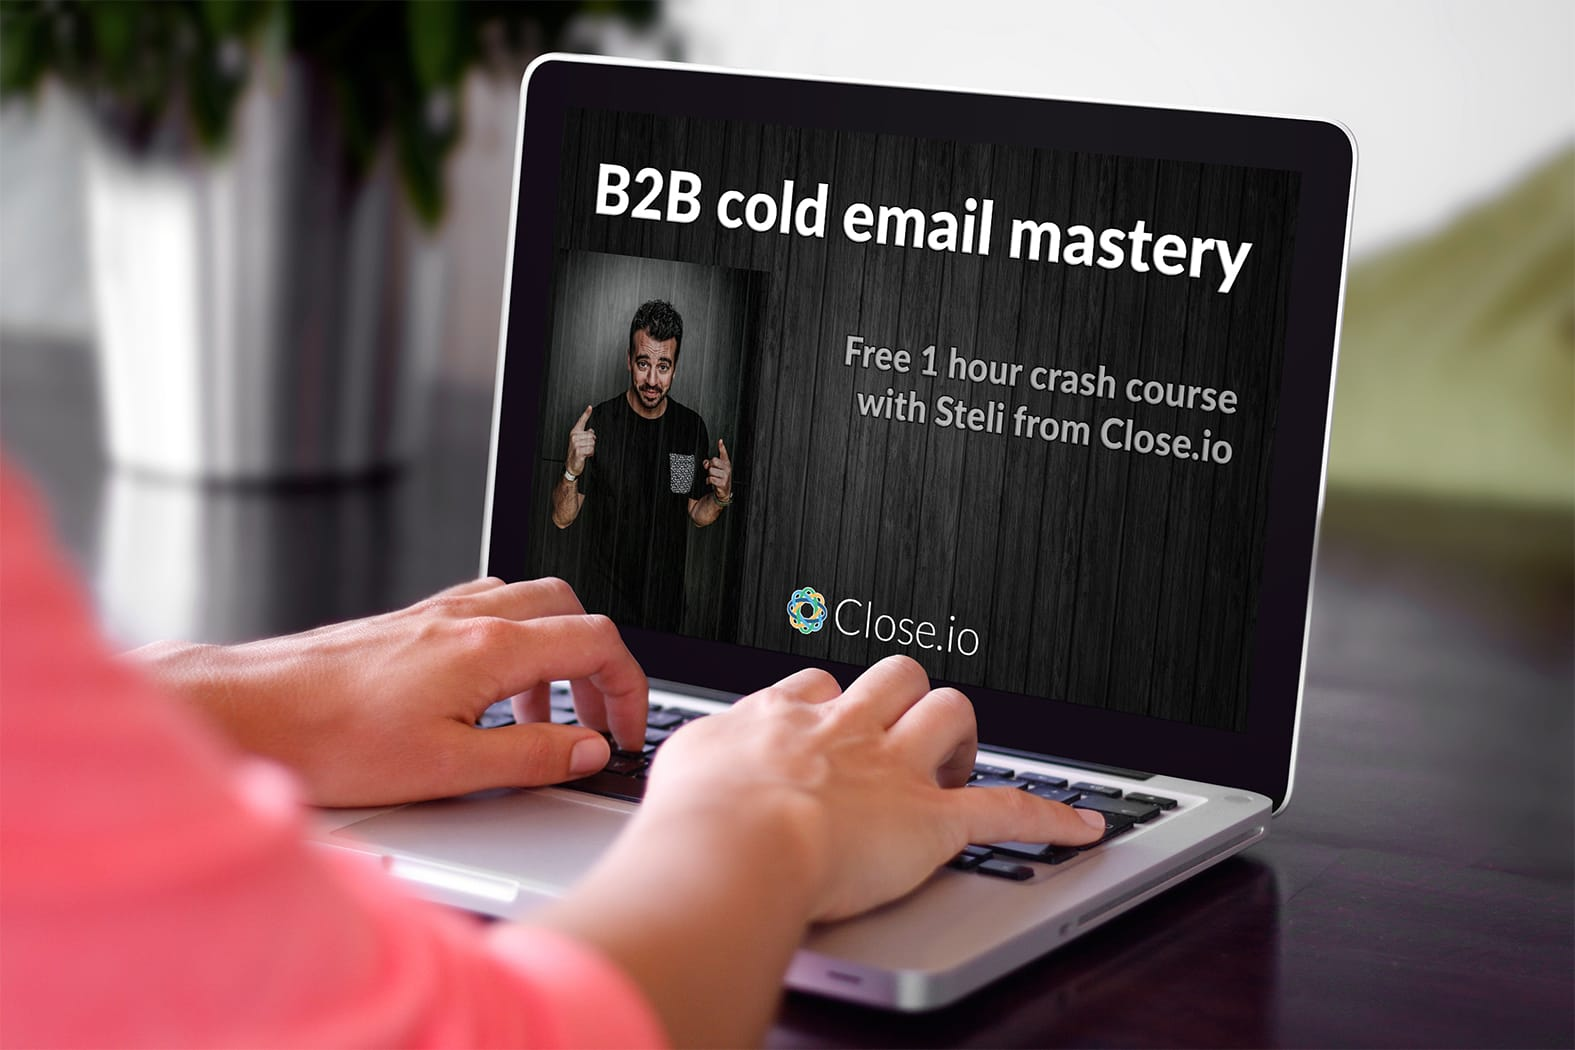 B2B cold emailing [FREE 1 hour crash course]